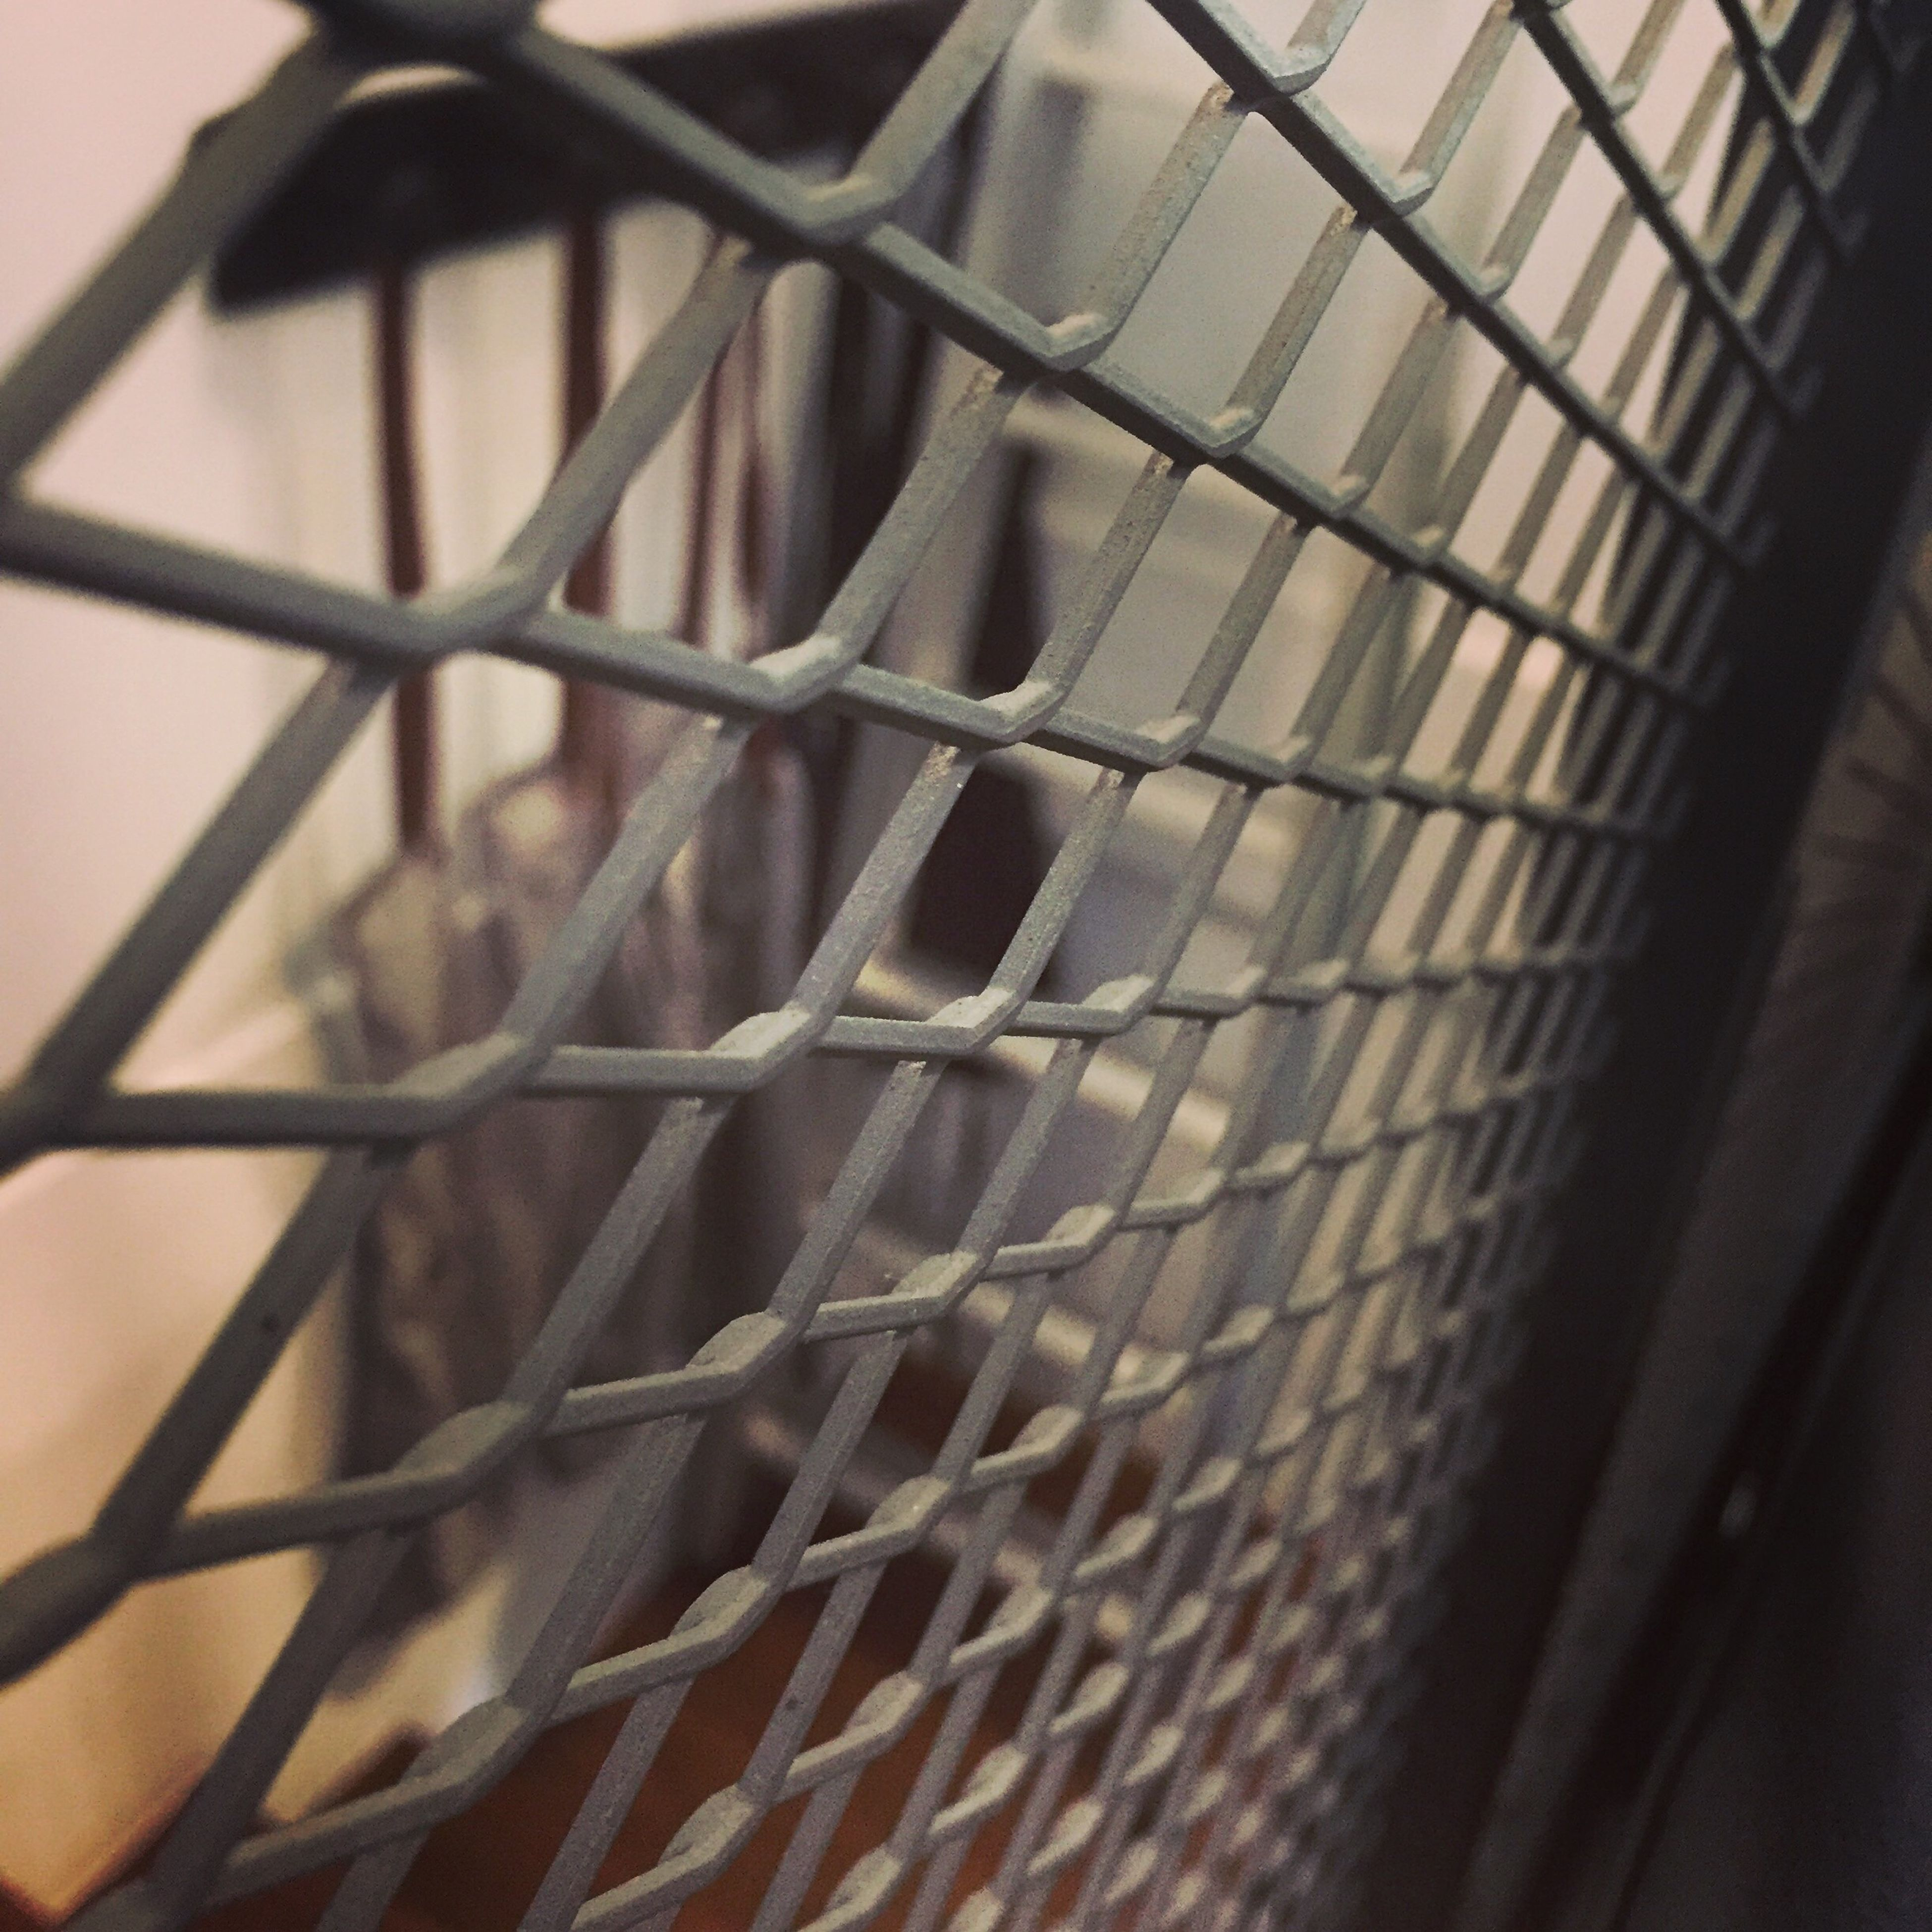 close-up, fence, safety, protection, security, metal, focus on foreground, full frame, chainlink fence, day, nature, no people